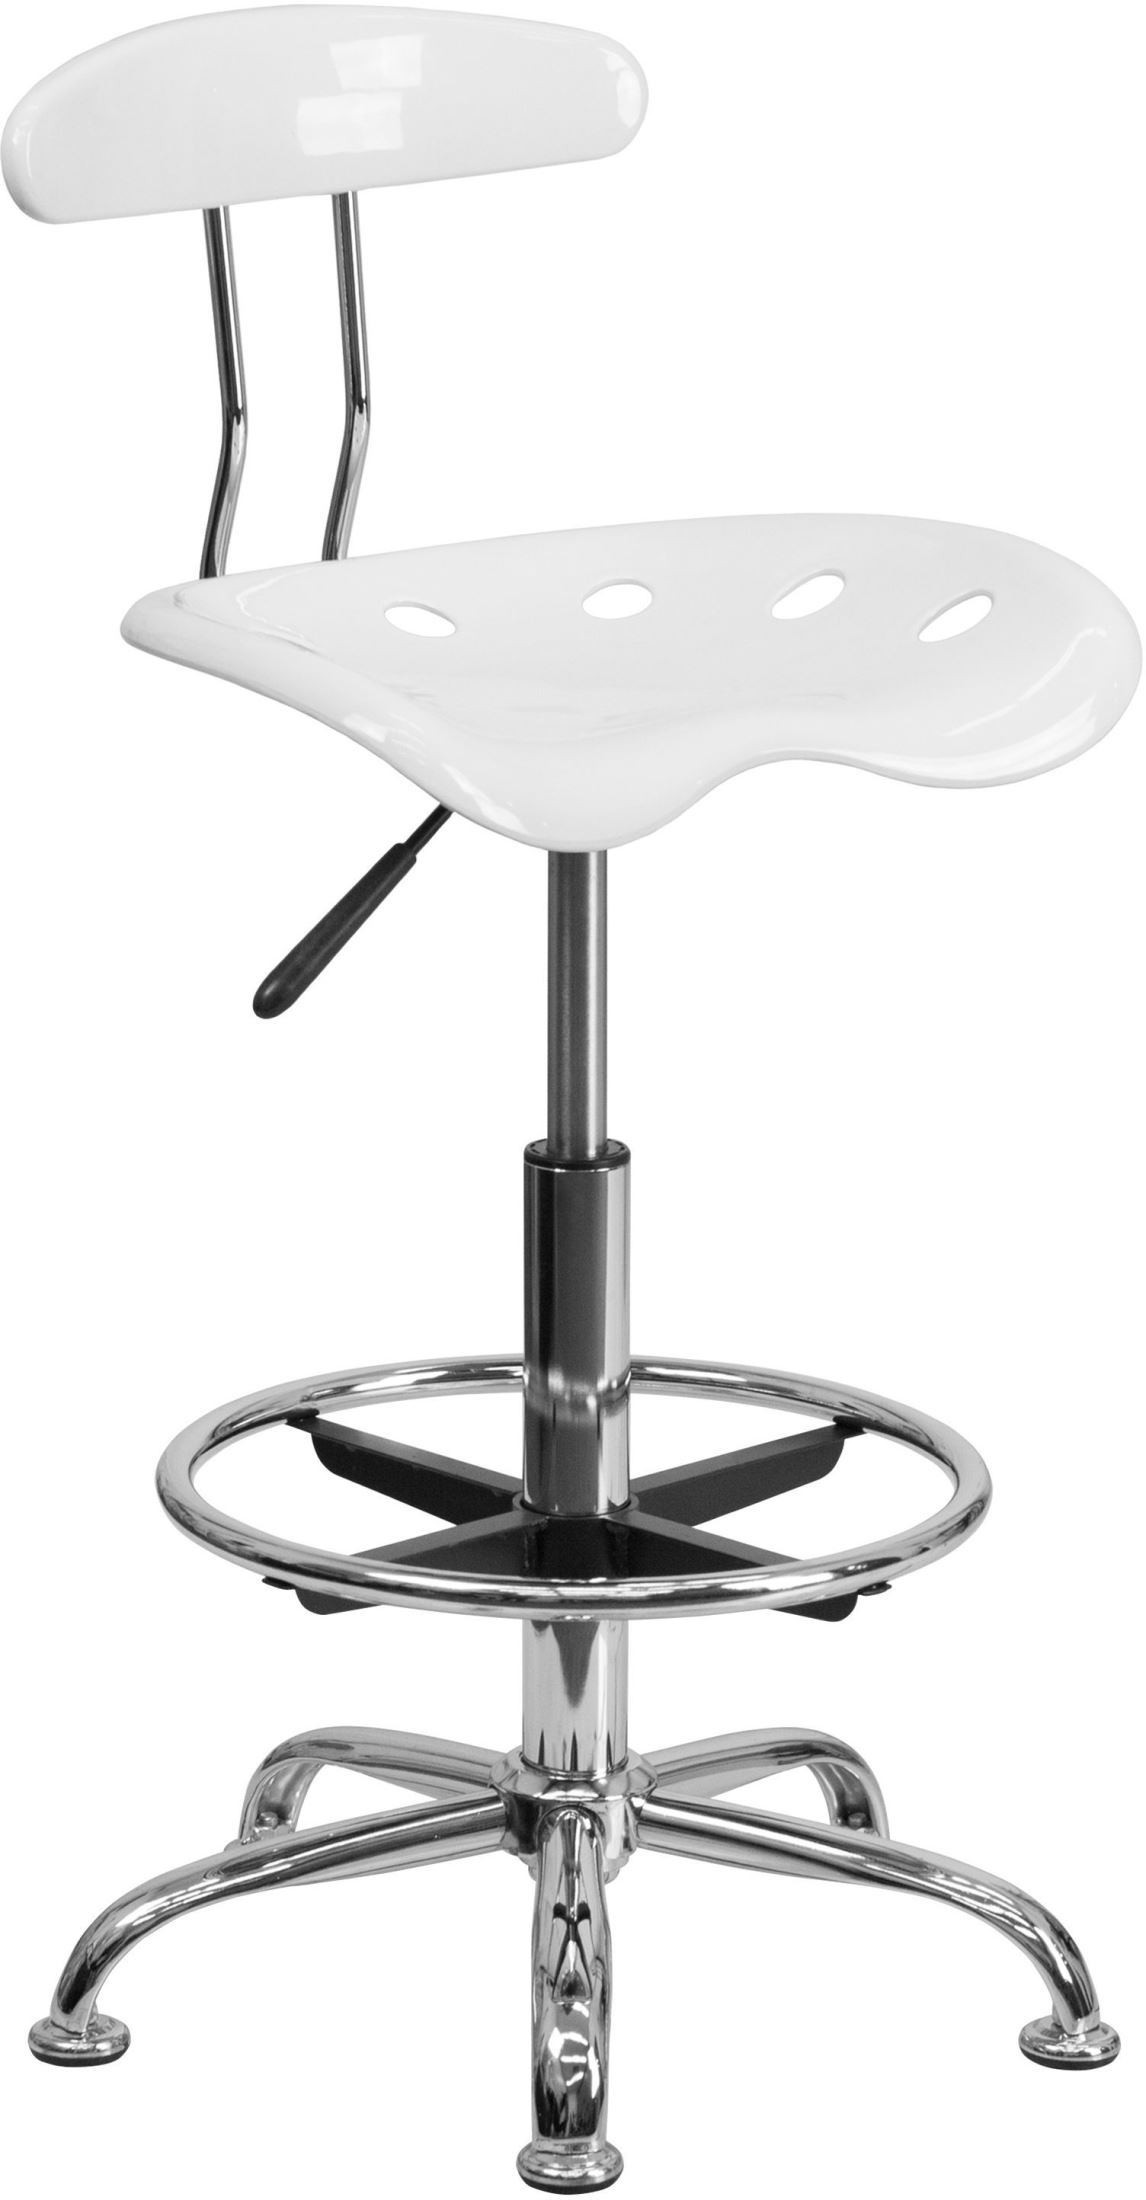 Chrome Tractor Seats : Vibrant white and chrome tractor seat drafting stool min